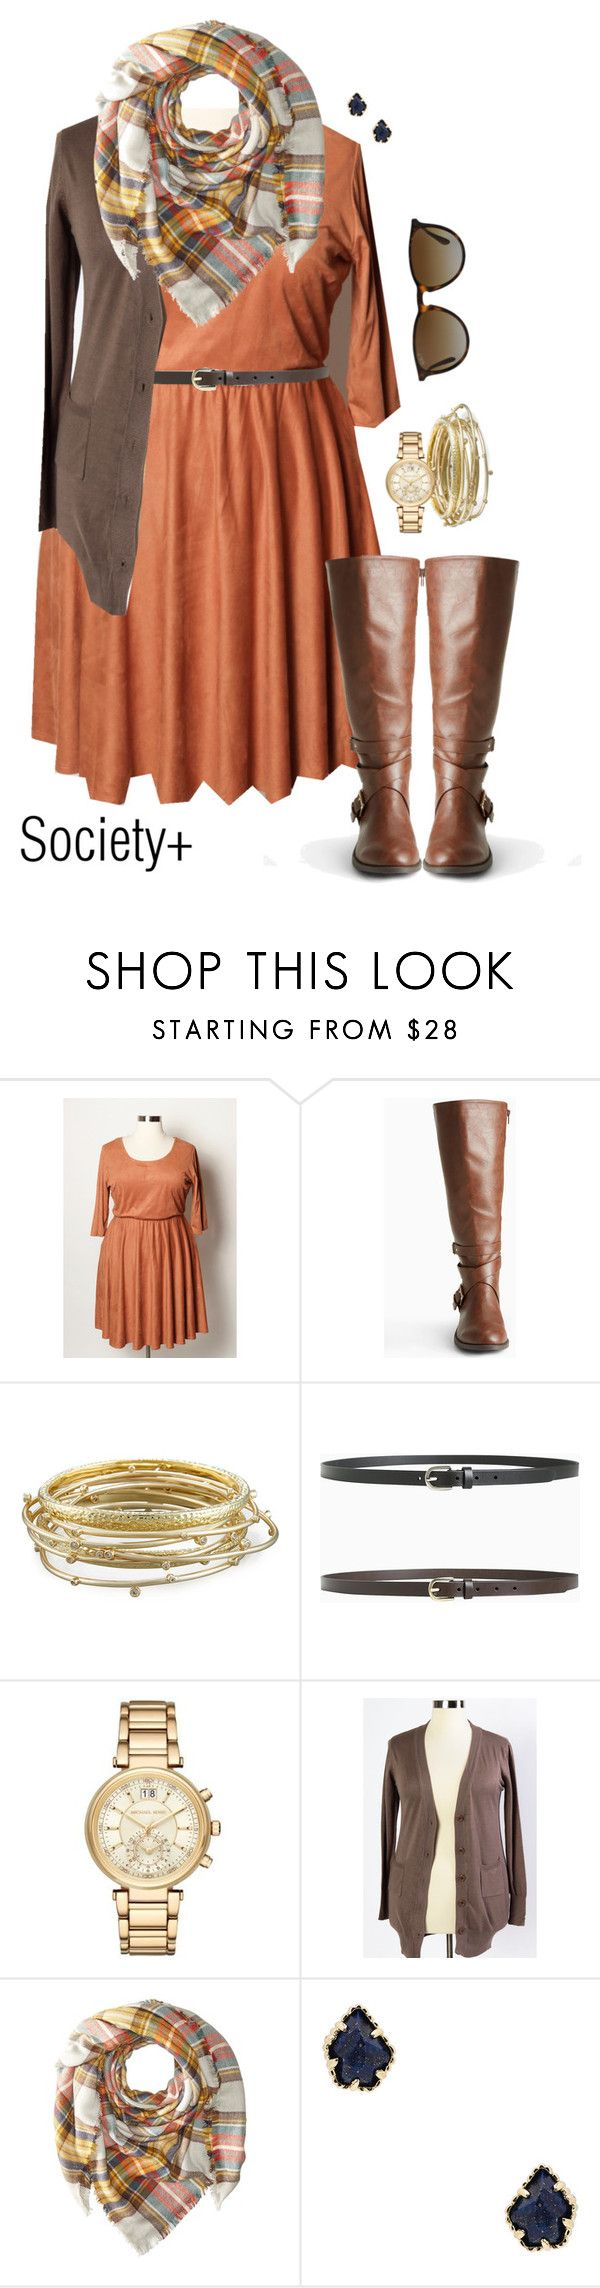 """""""Plus Size Rust Faux Suede Skater Dress - Society+"""" by iamsocietyplus on Polyvore featuring Kendra Scott, Michael Kors, Hat Attack, Ray-Ban, plussize, societyplus and iamsocietyplus"""